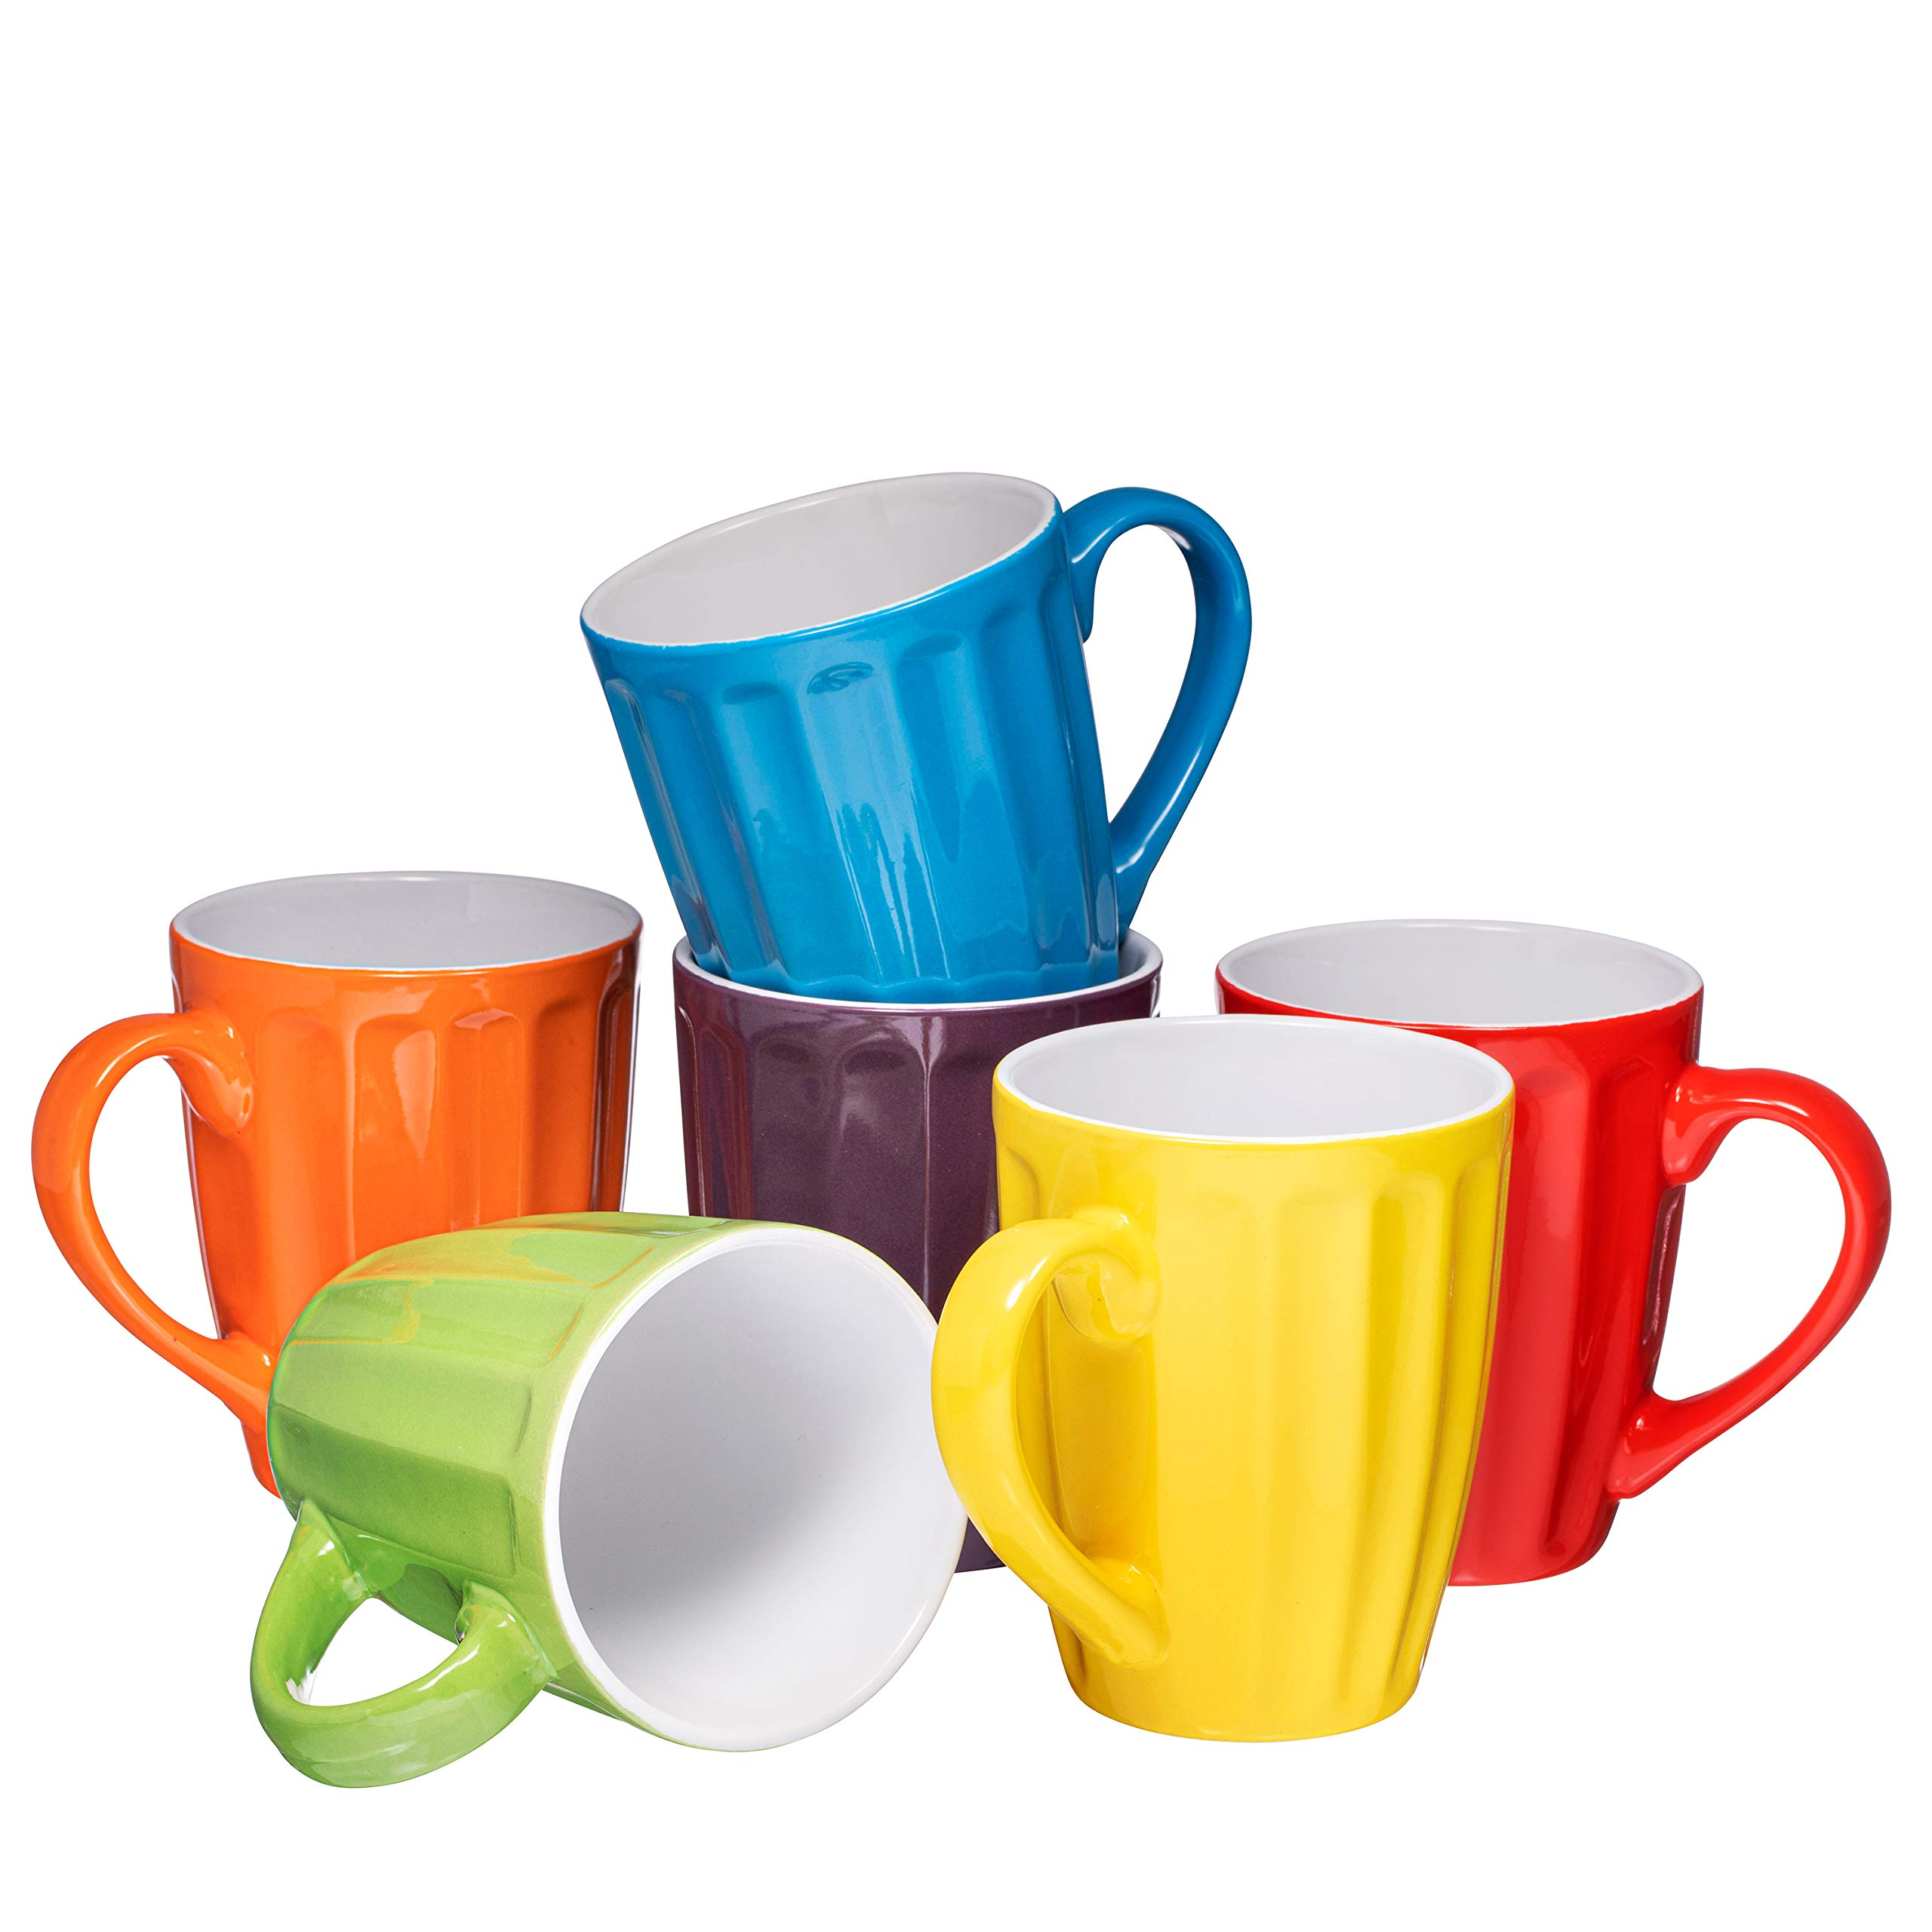 Set of 6 Large-sized 16 Ounce Ceramic Coffee Grooved Mugs, Multi-Color